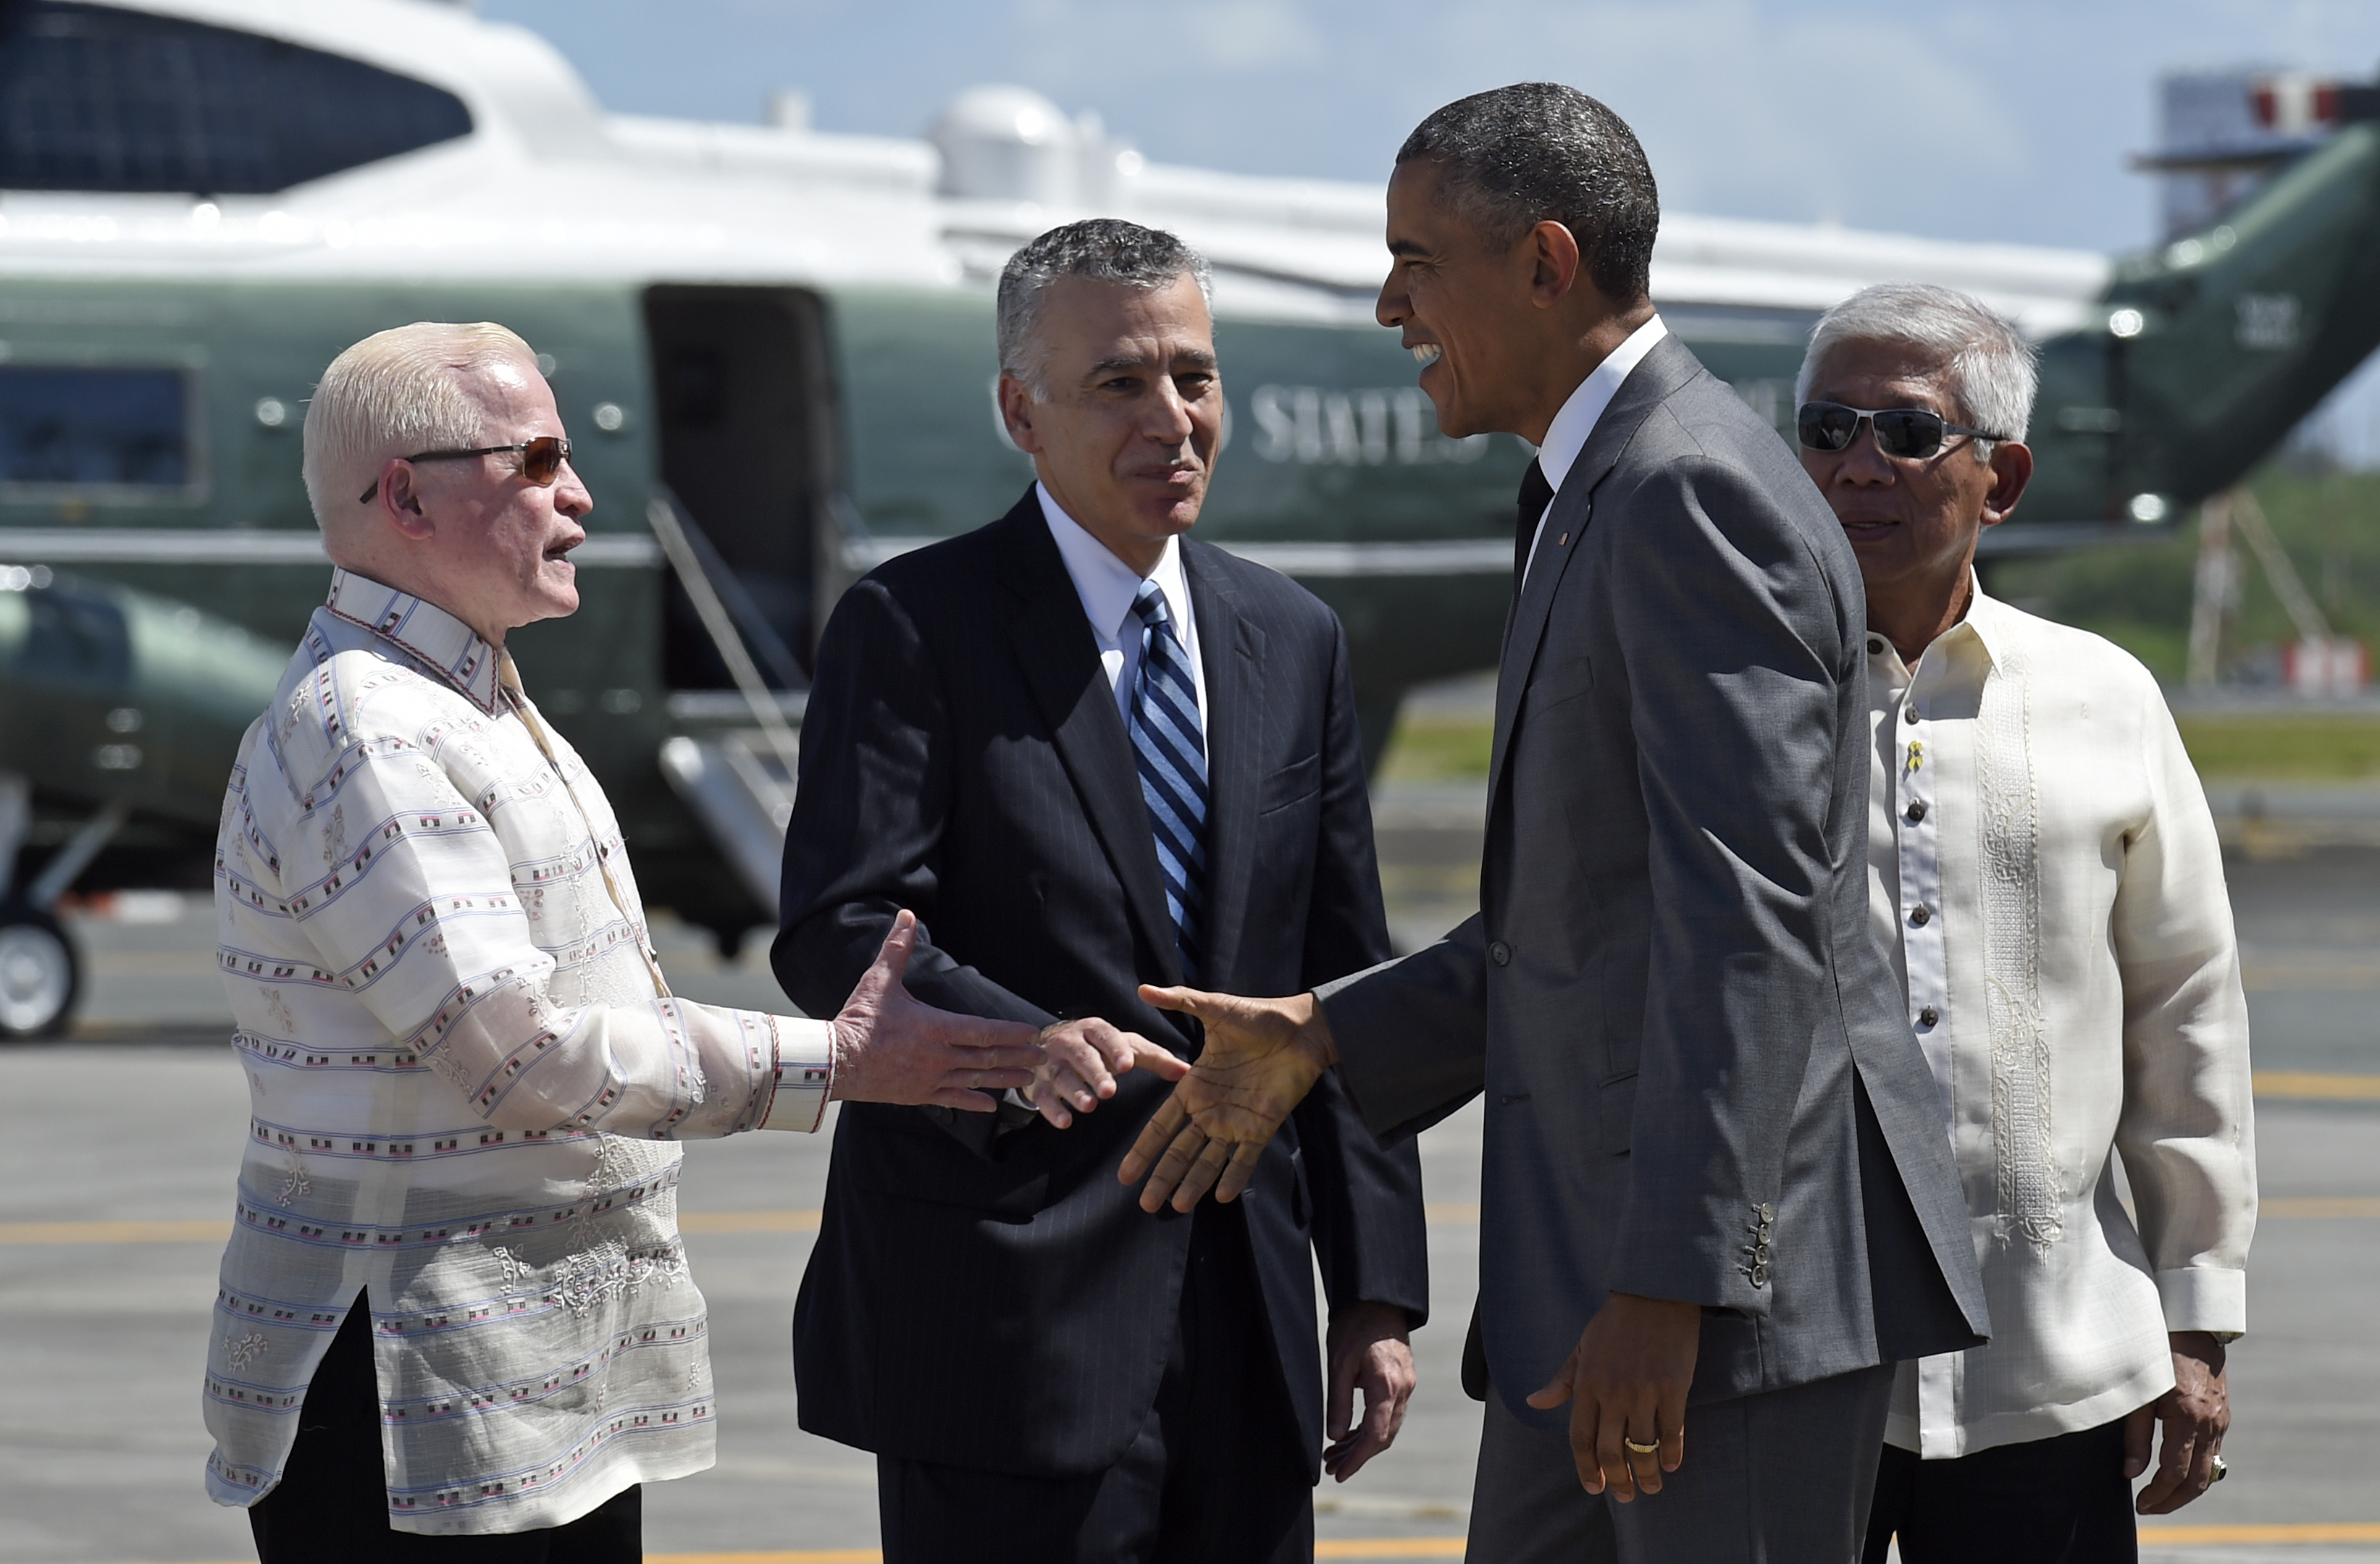 U.S. President Barack Obama, second from right, reaches to shake hands with Philippine Ambassador to the U.S. Jose Cuisia Jr., left, after arriving at Ninoy Aquino International Airport in Manila, Philippines, Nov. 17, 2015.